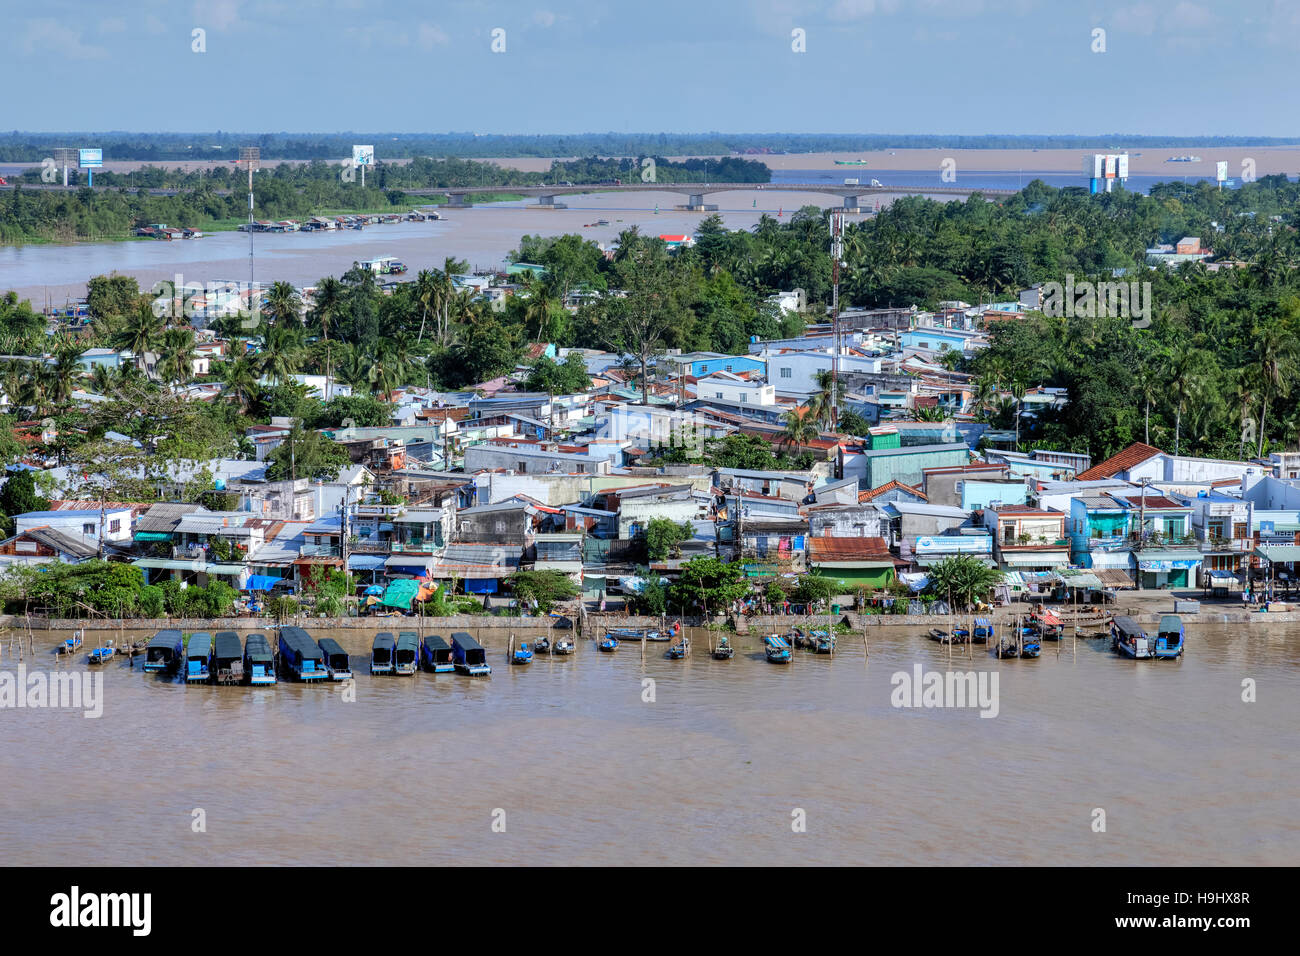 Can Tho, Mekong Delta, Vietnam, Asia - Stock Image